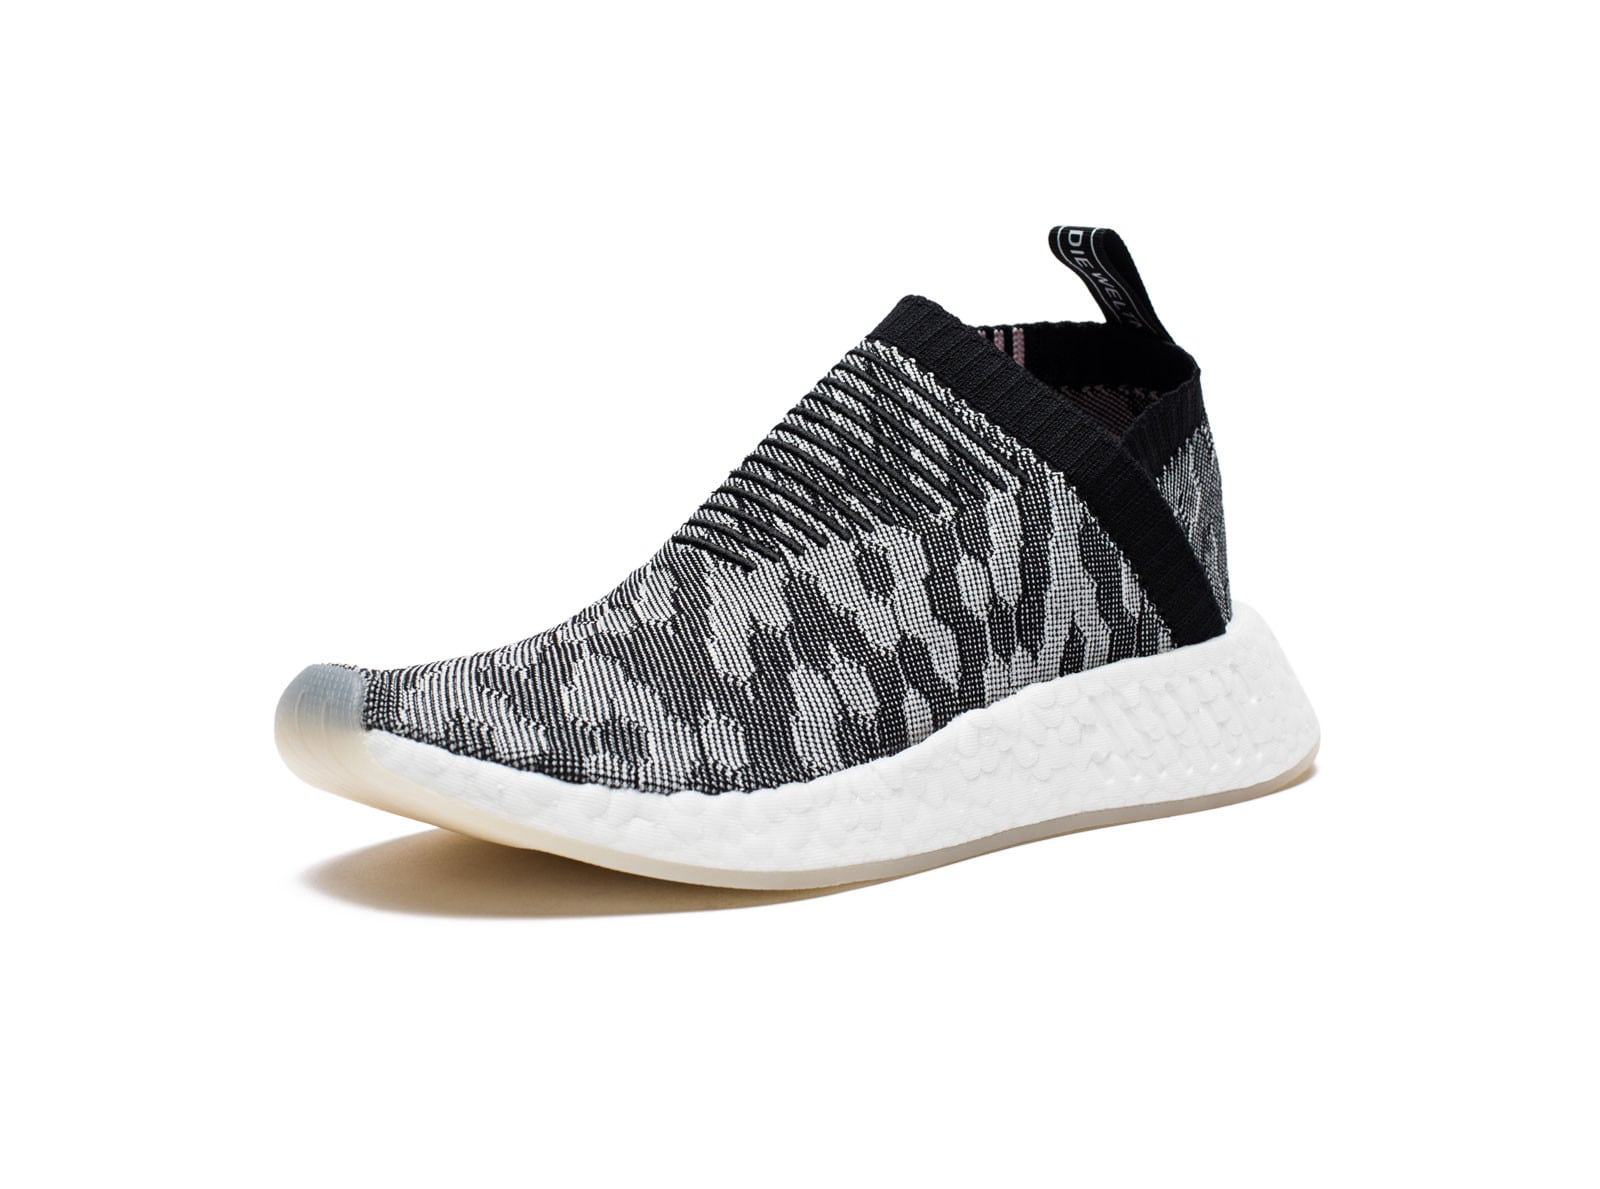 WOMEN'S NMD CS2 PK - BLACK/WONPINK